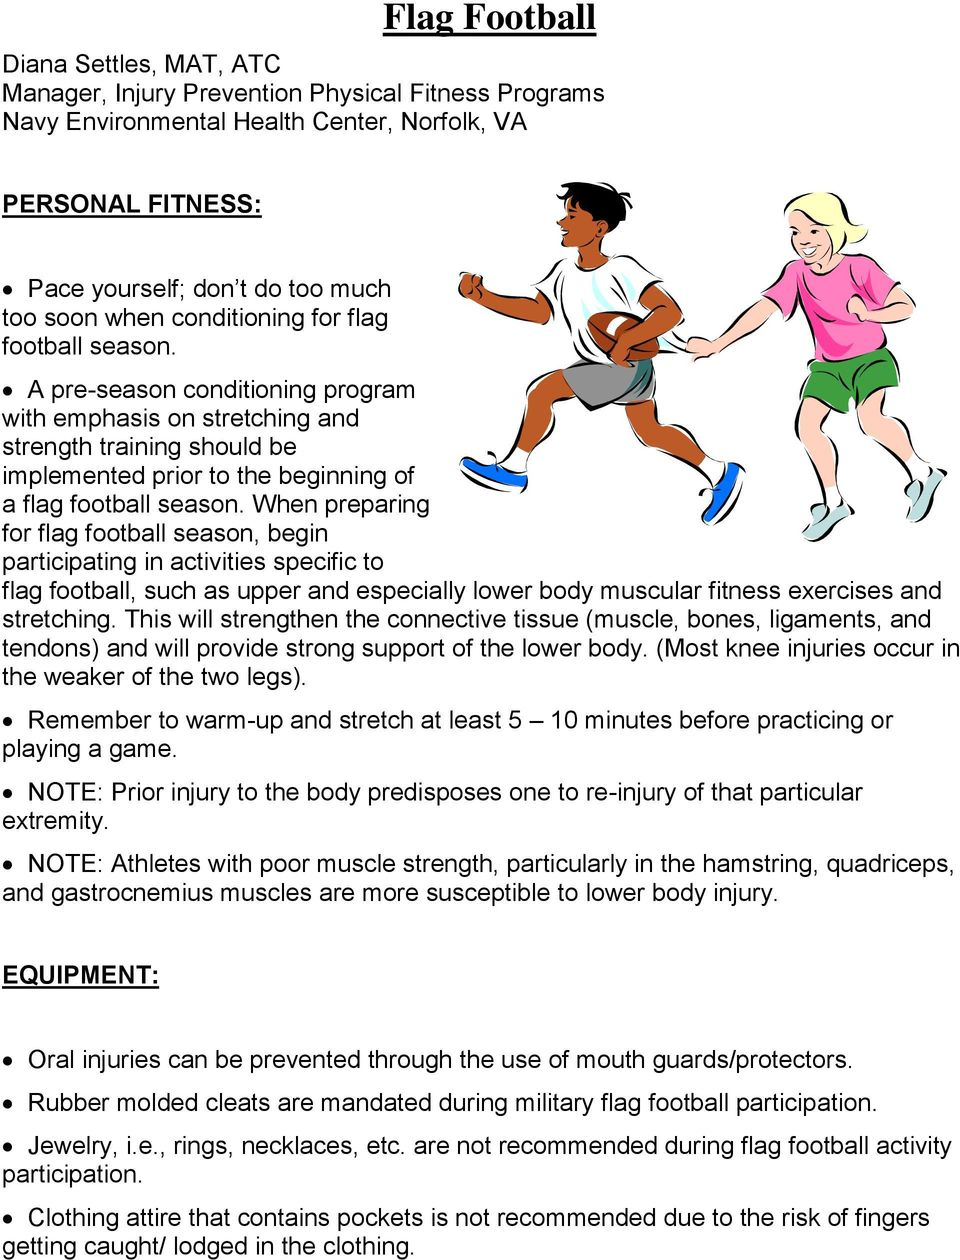 When preparing for flag football season, begin participating in activities specific to flag football, such as upper and especially lower body muscular fitness exercises and stretching.